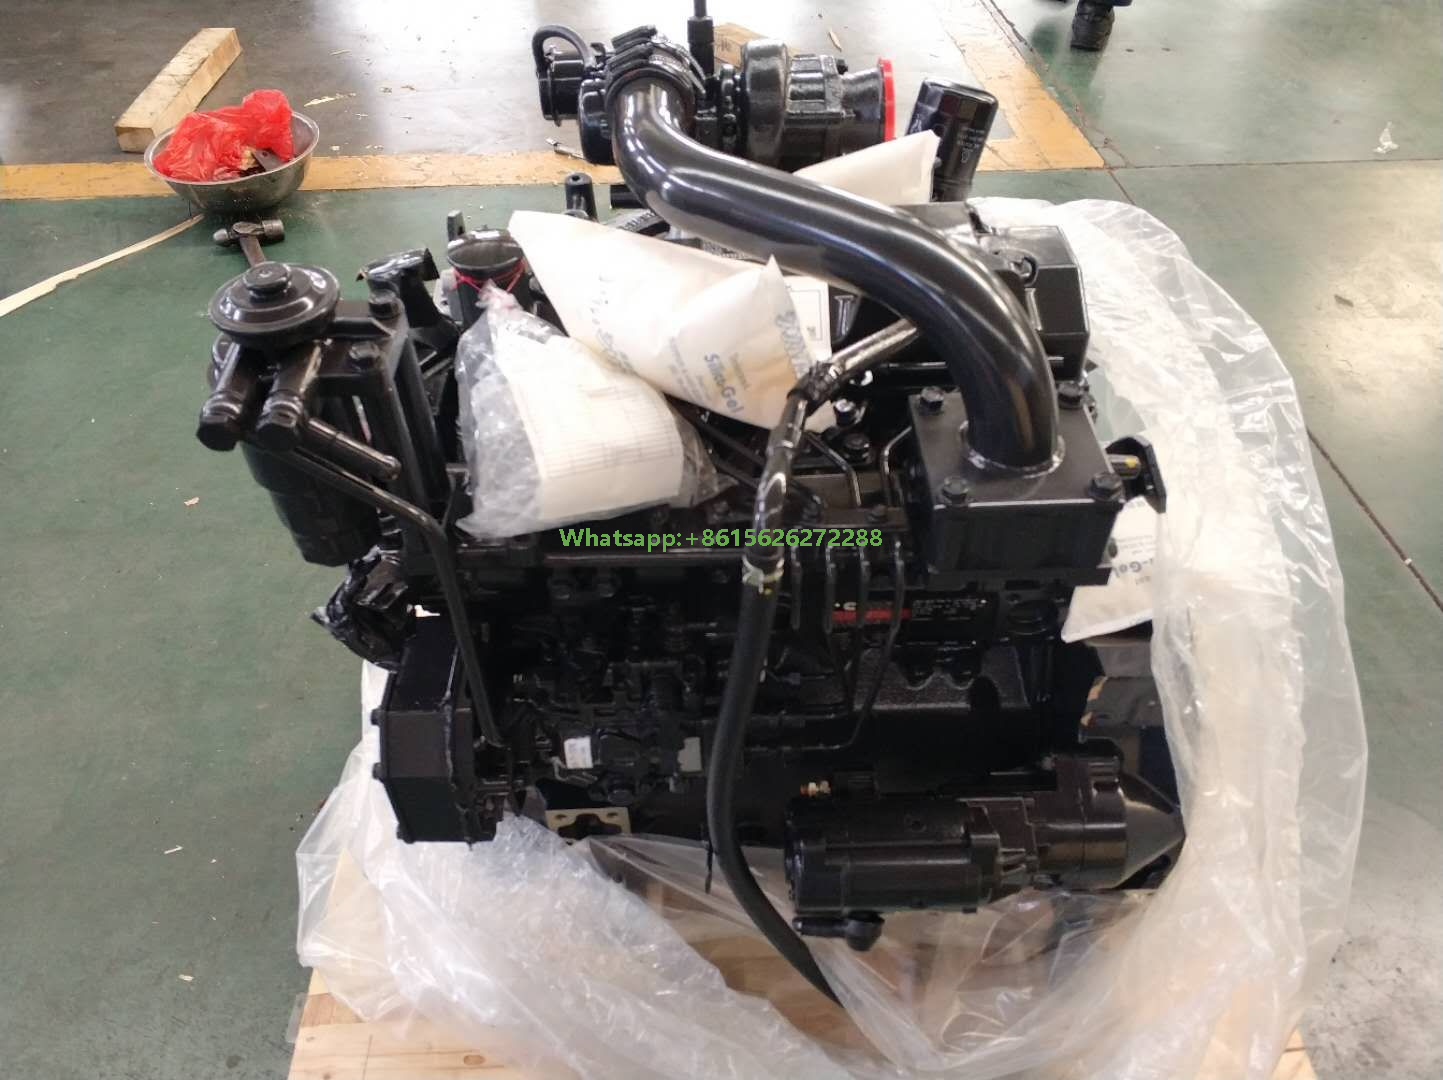 Cummins Industrial Engine B3.3 60-85 Hp 45-63 KW